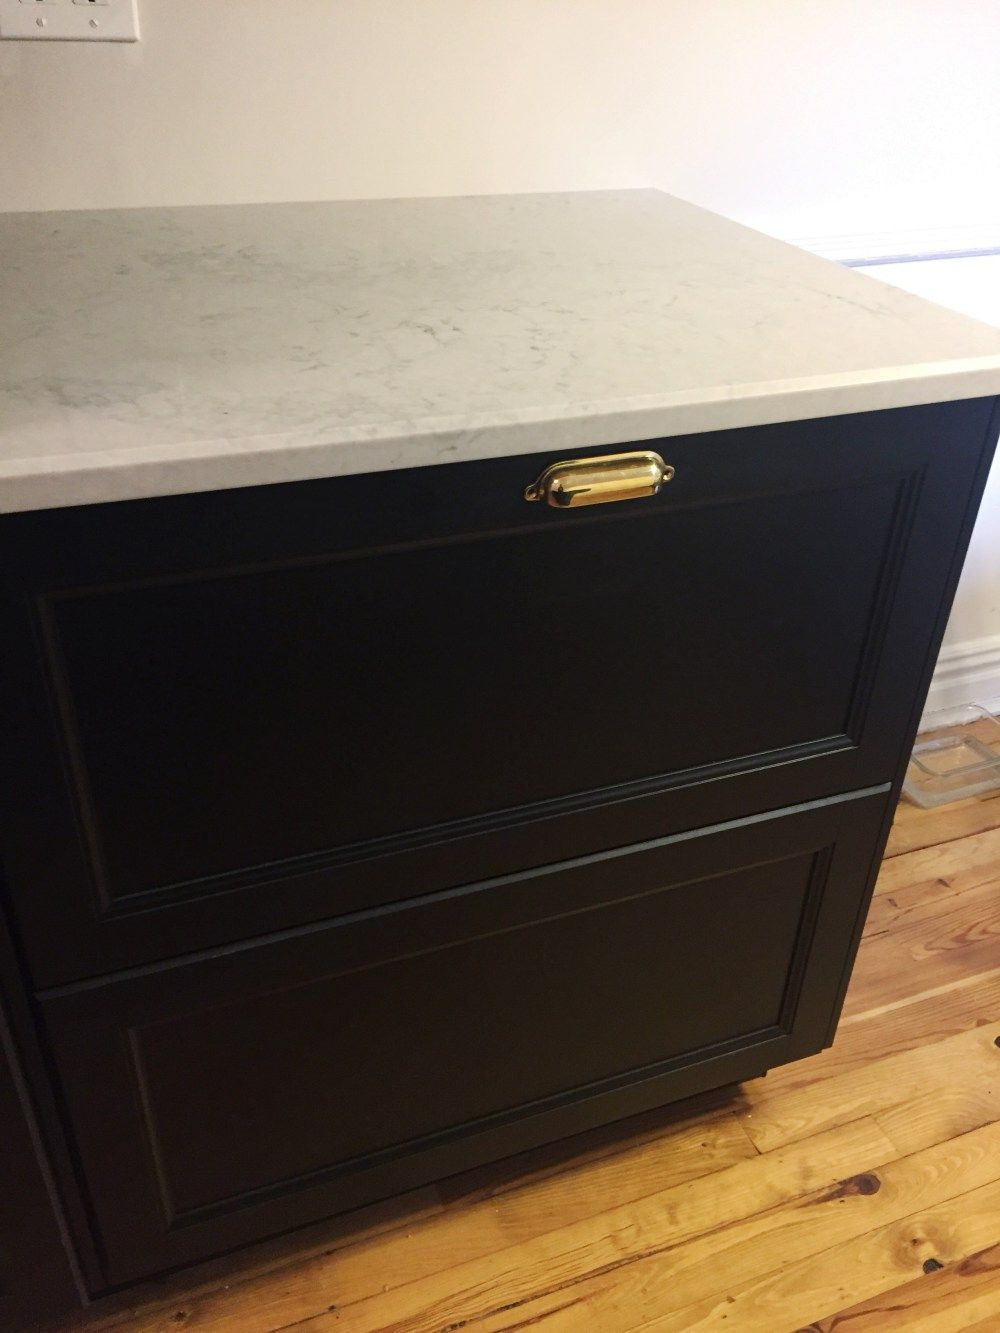 Ikea Laxarby Cabinets Nobel Grey Caesarstone Counters